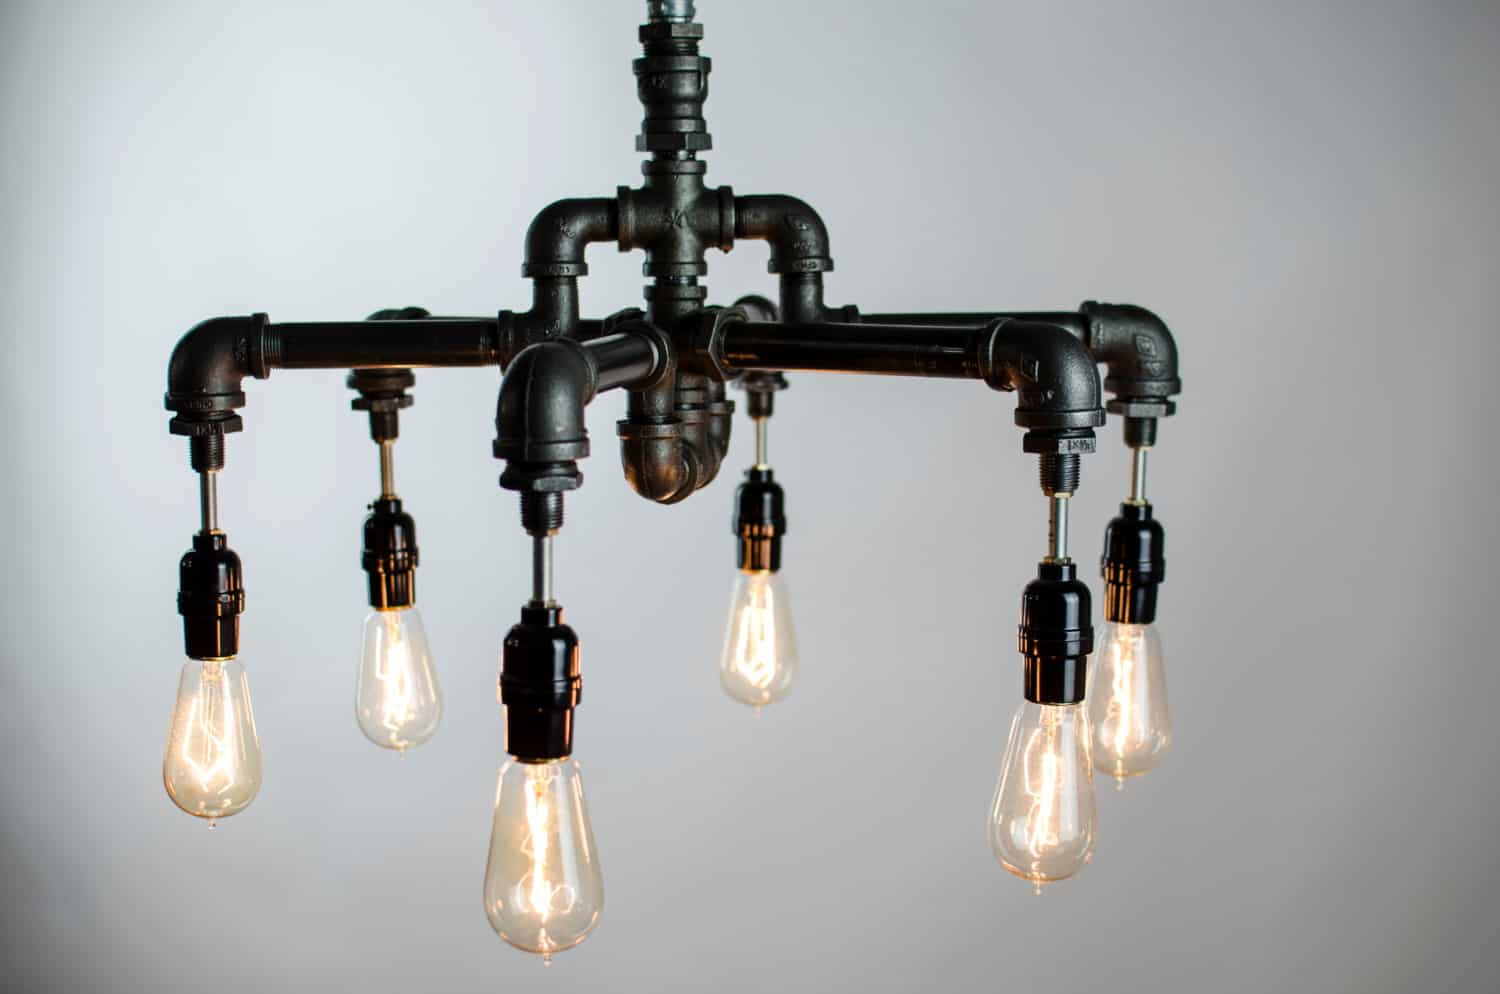 Pipe Light Fixtures 23 Awesome Plumbing Pipe Furniture Designs